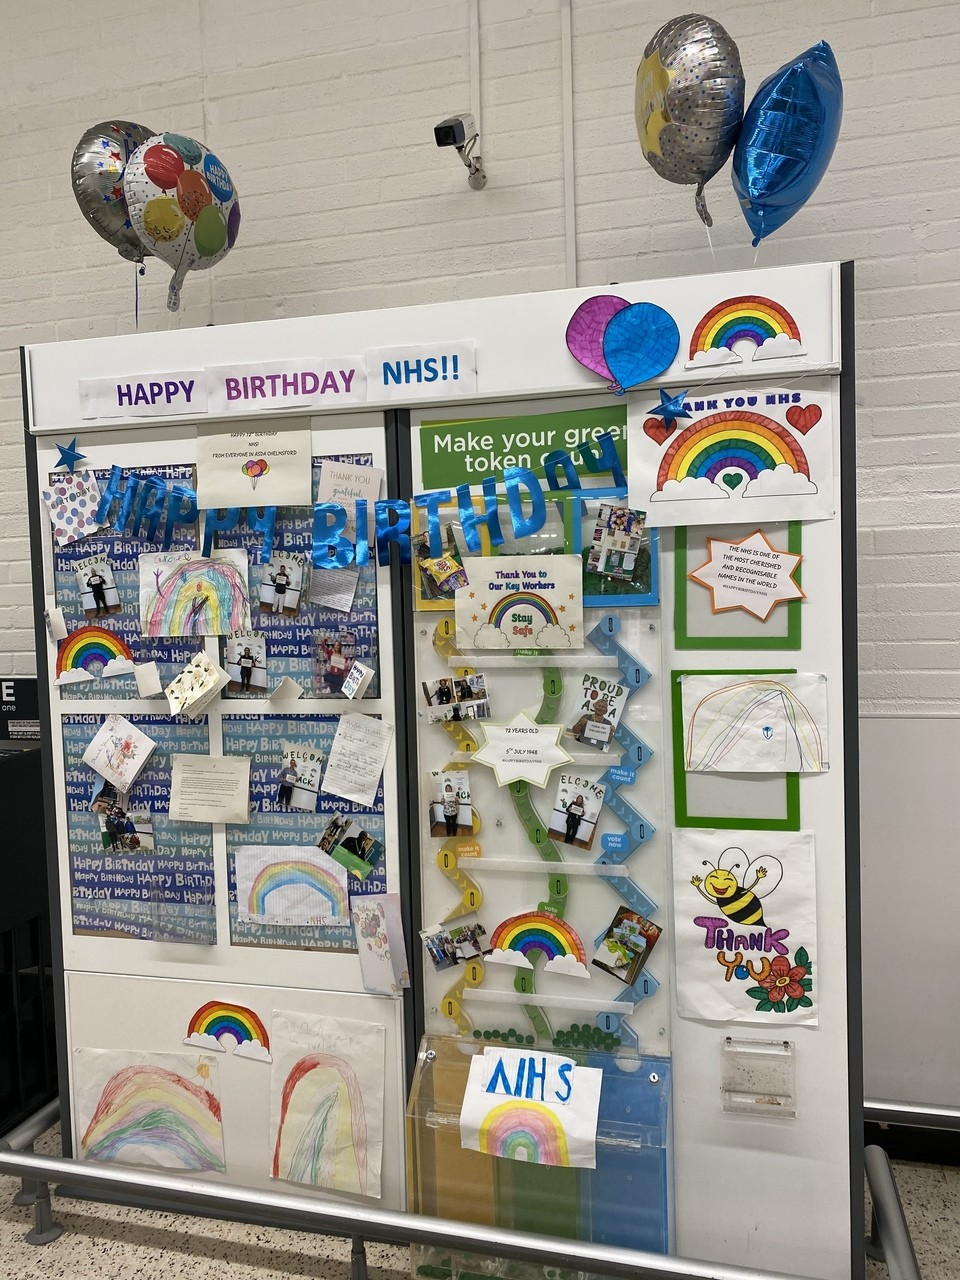 Happy 72nd Birthday to the NHS | Asda Chelmsford